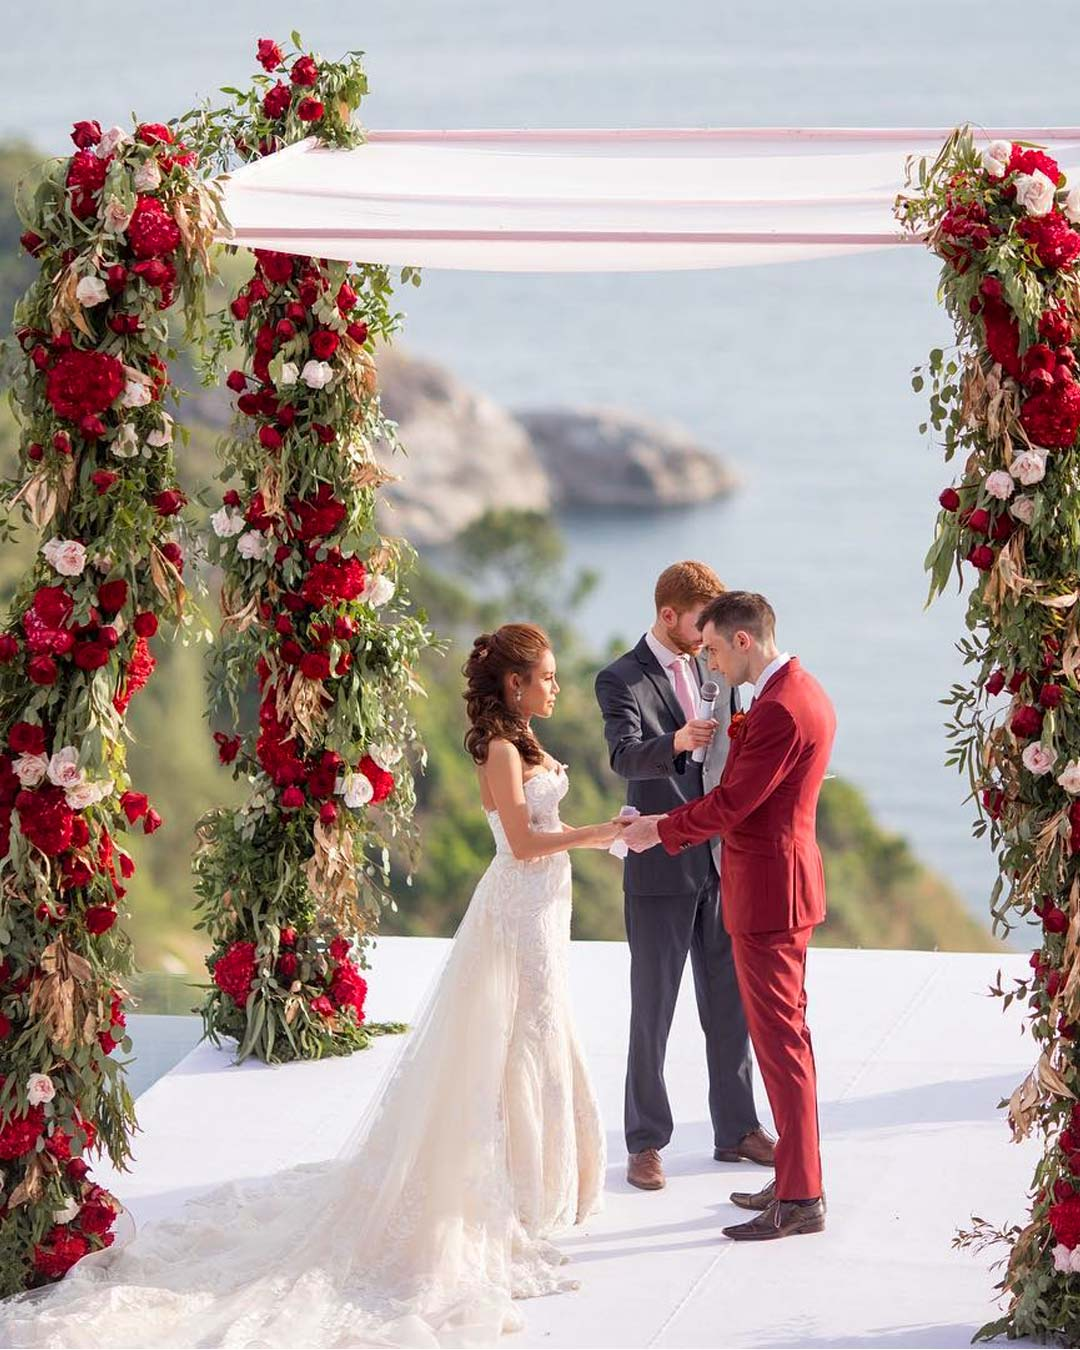 wedding colors red white flowers arch bride groom